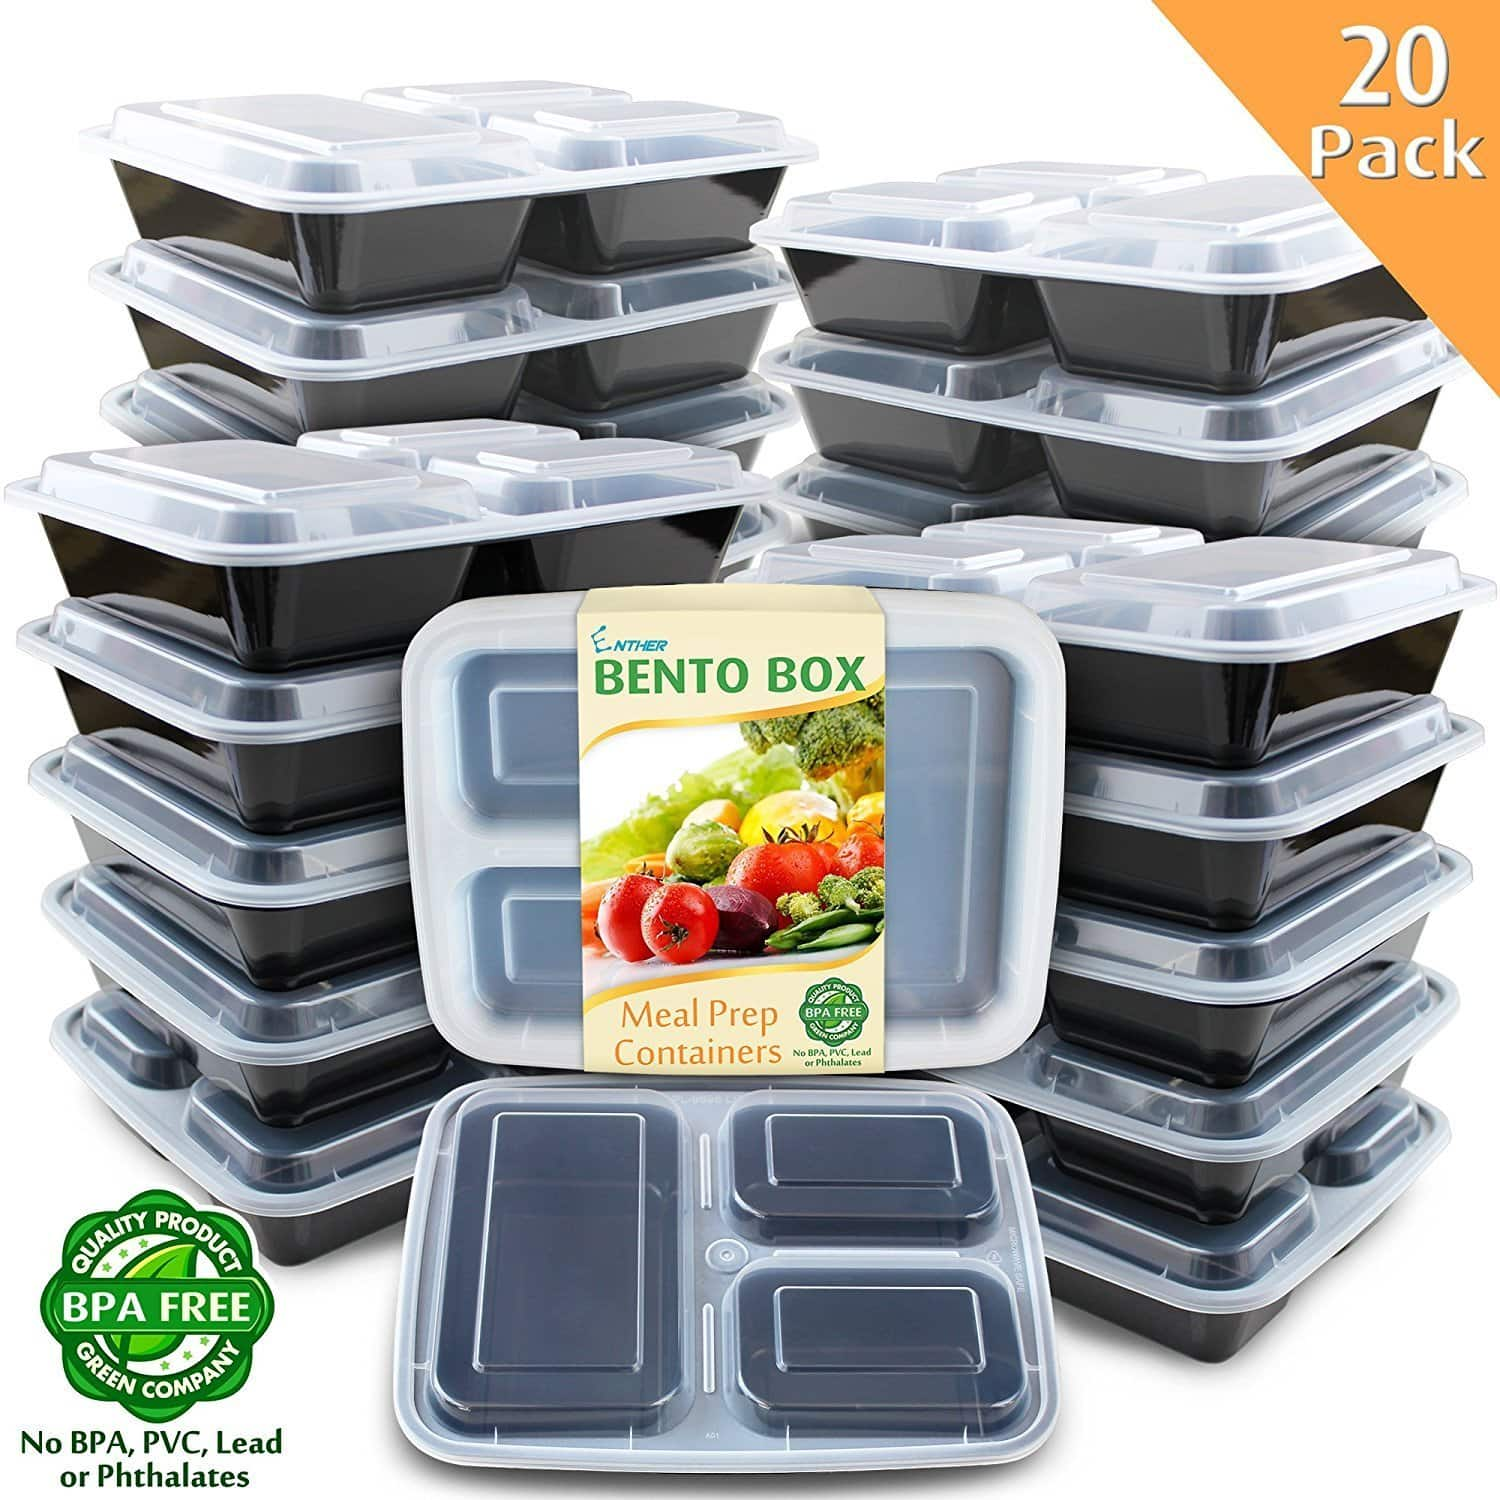 20 pack BPA free food containers meal prepp containers $15.6 @Amazon